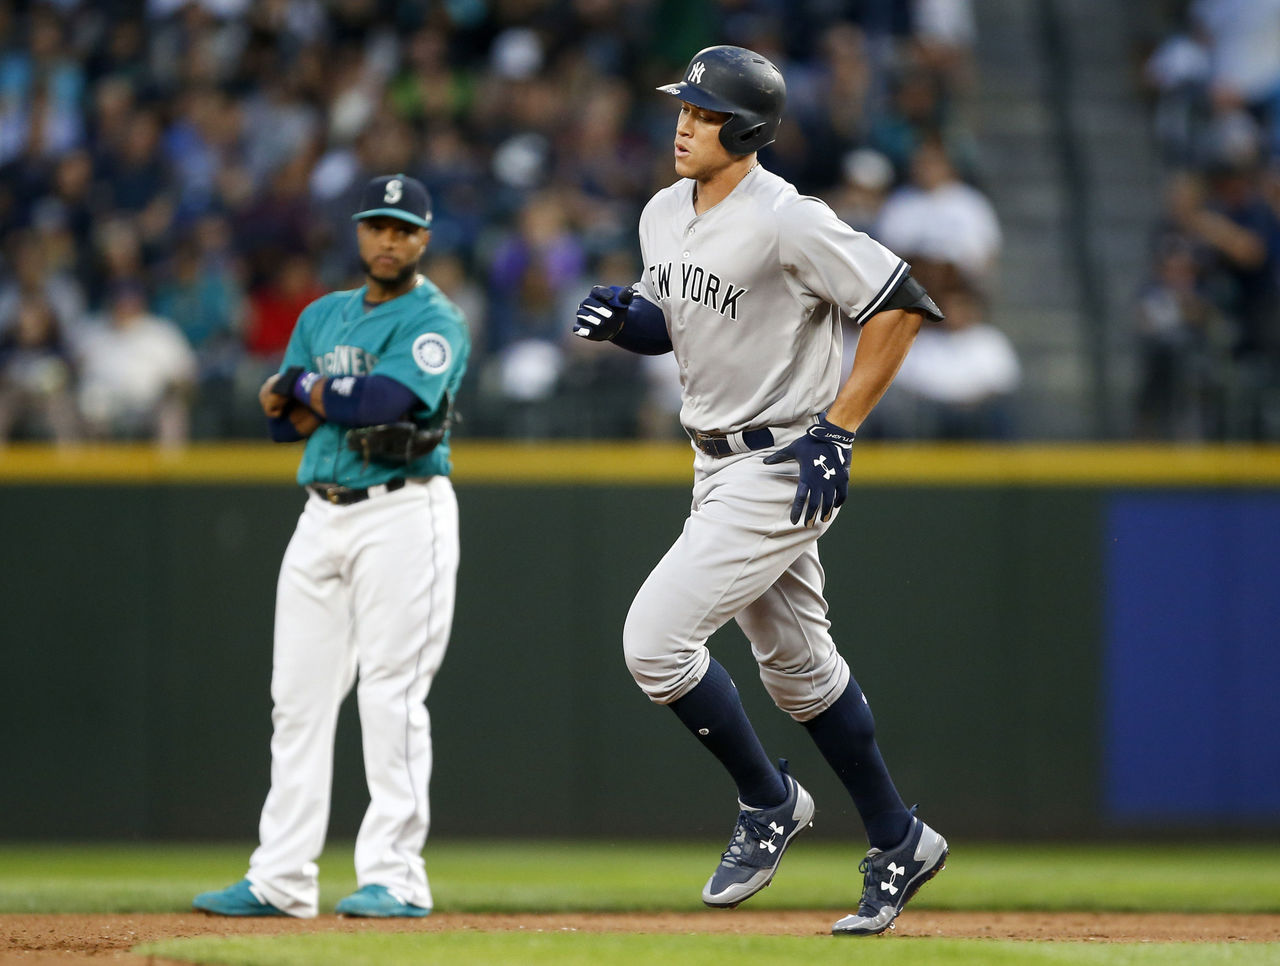 Cropped 2017 07 22t035437z 2046379754 nocid rtrmadp 3 mlb new york yankees at seattle mariners